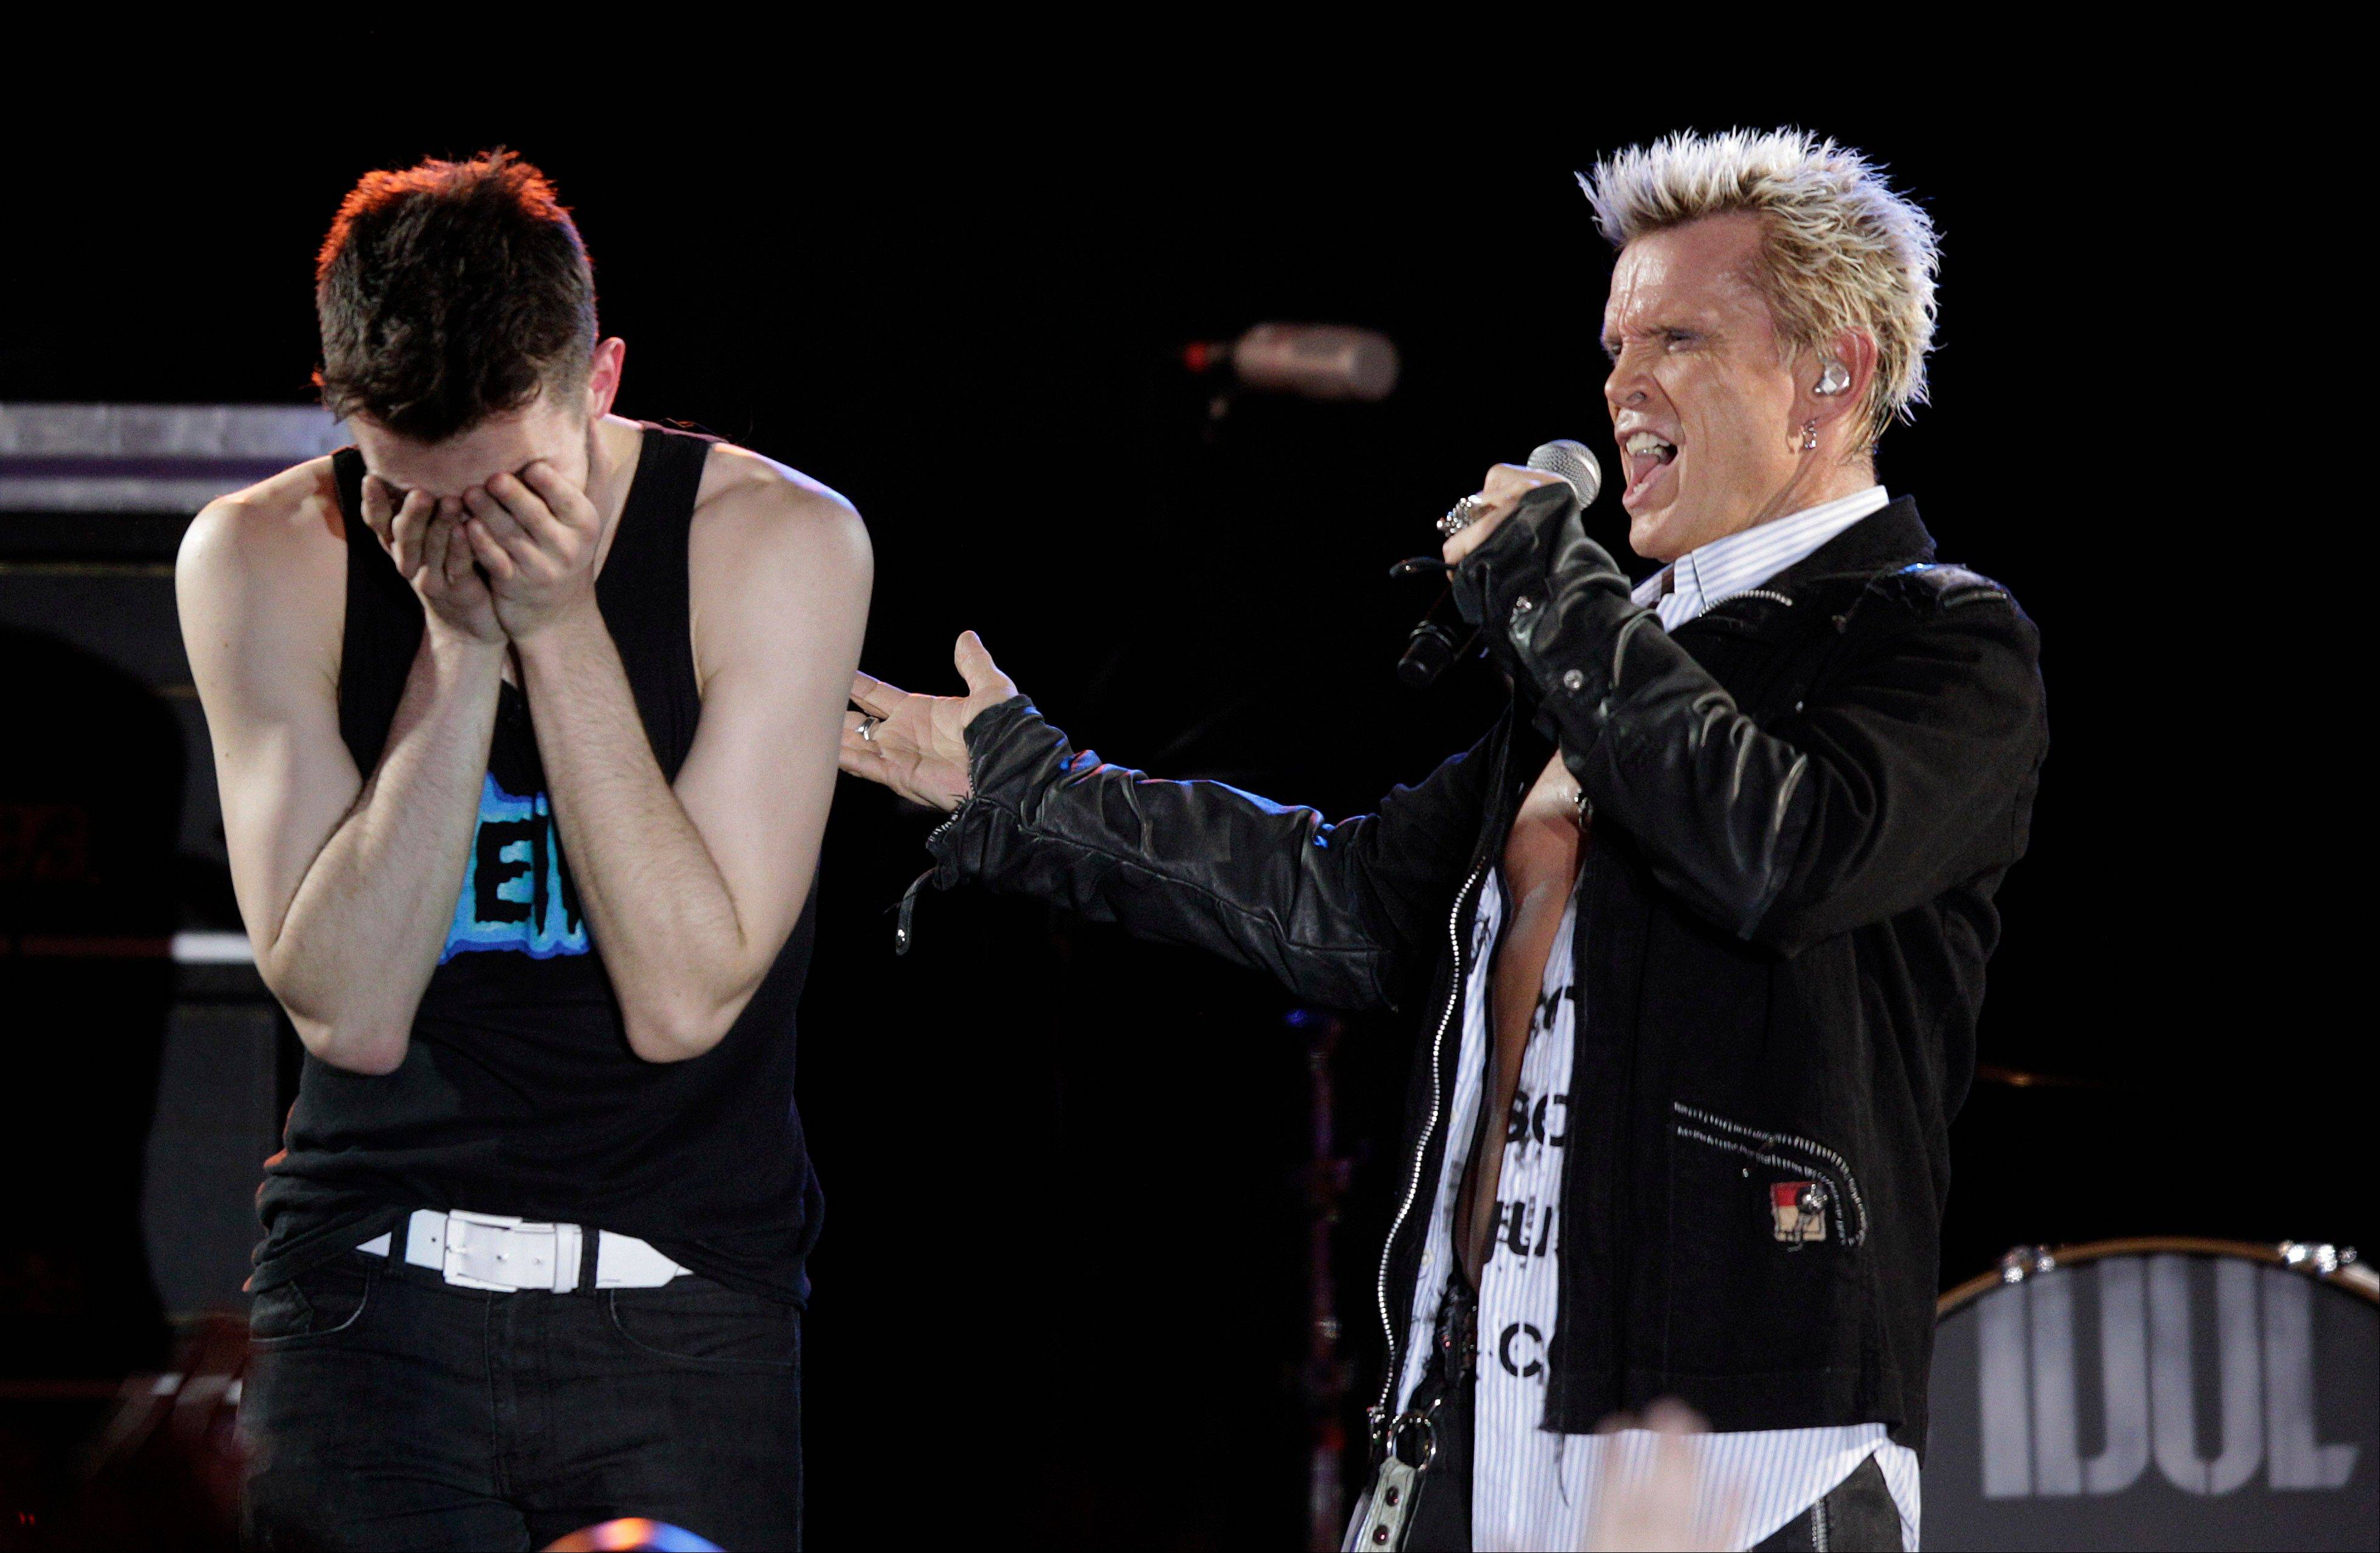 Billy Idol, right, is joined on stage by Michael Henrichsen, left, as Idol performs Friday in Seattle.